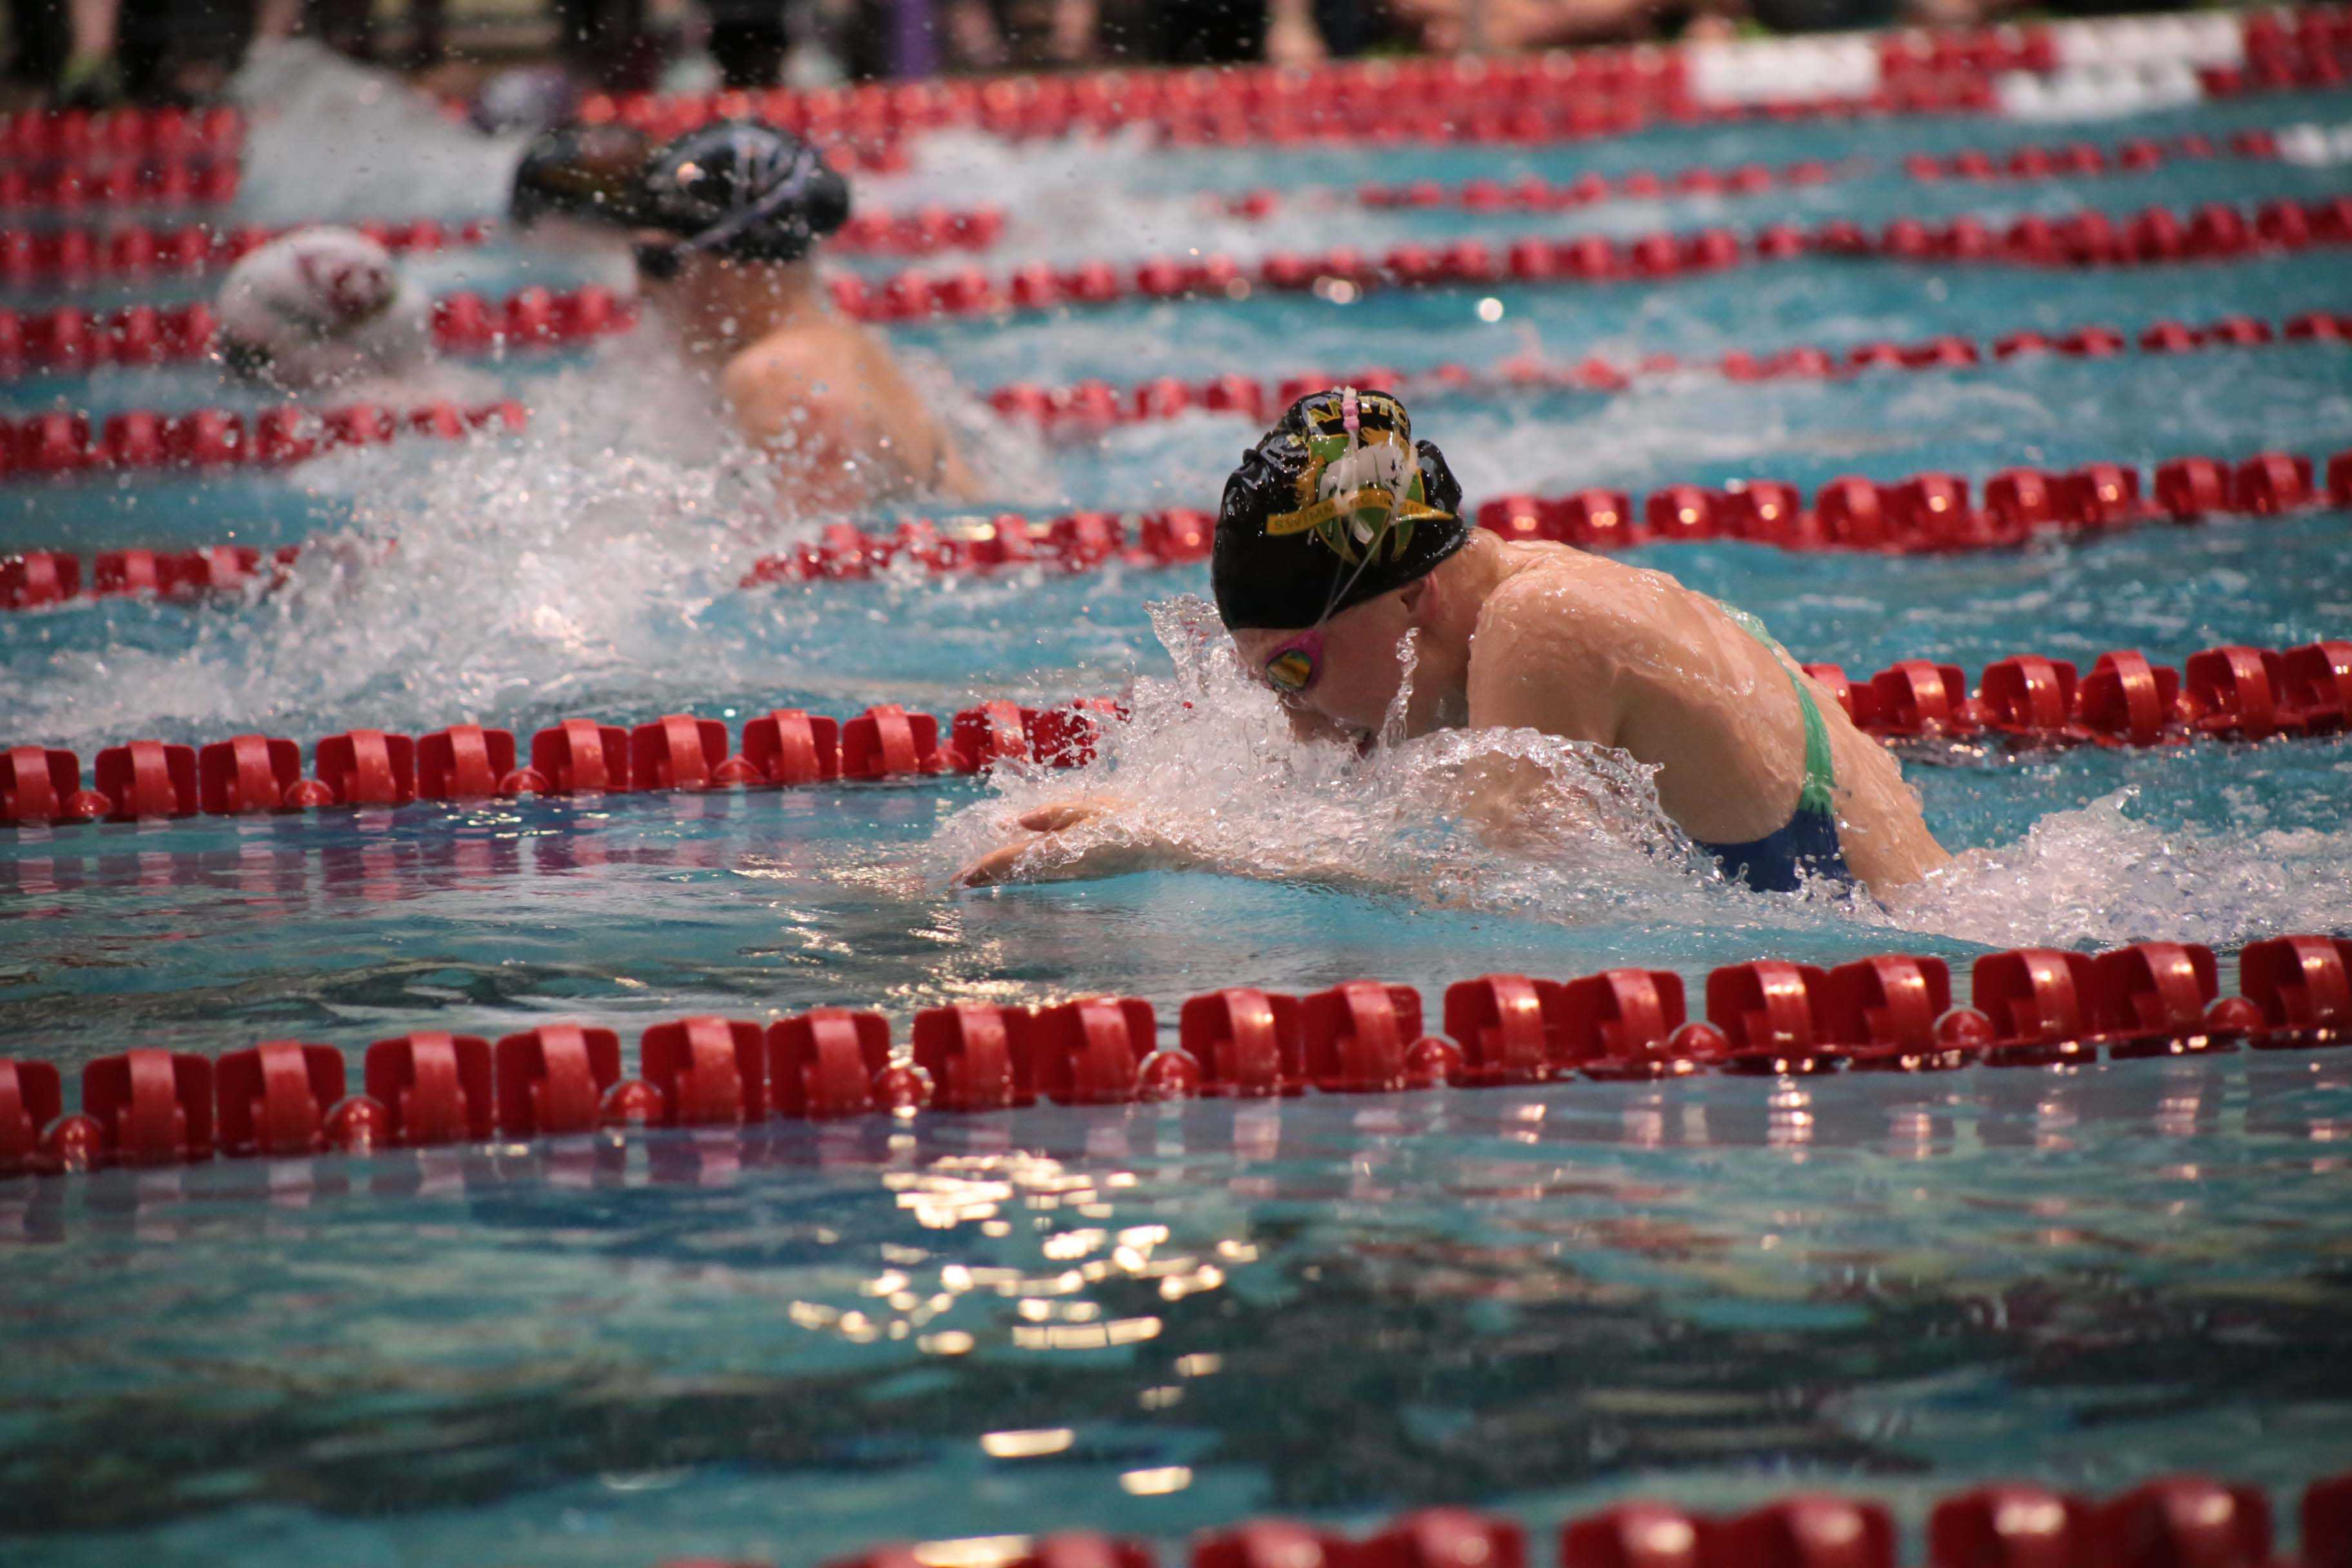 Sam White competes in the record-breaking 200 Medley Relay during the 2014 season.